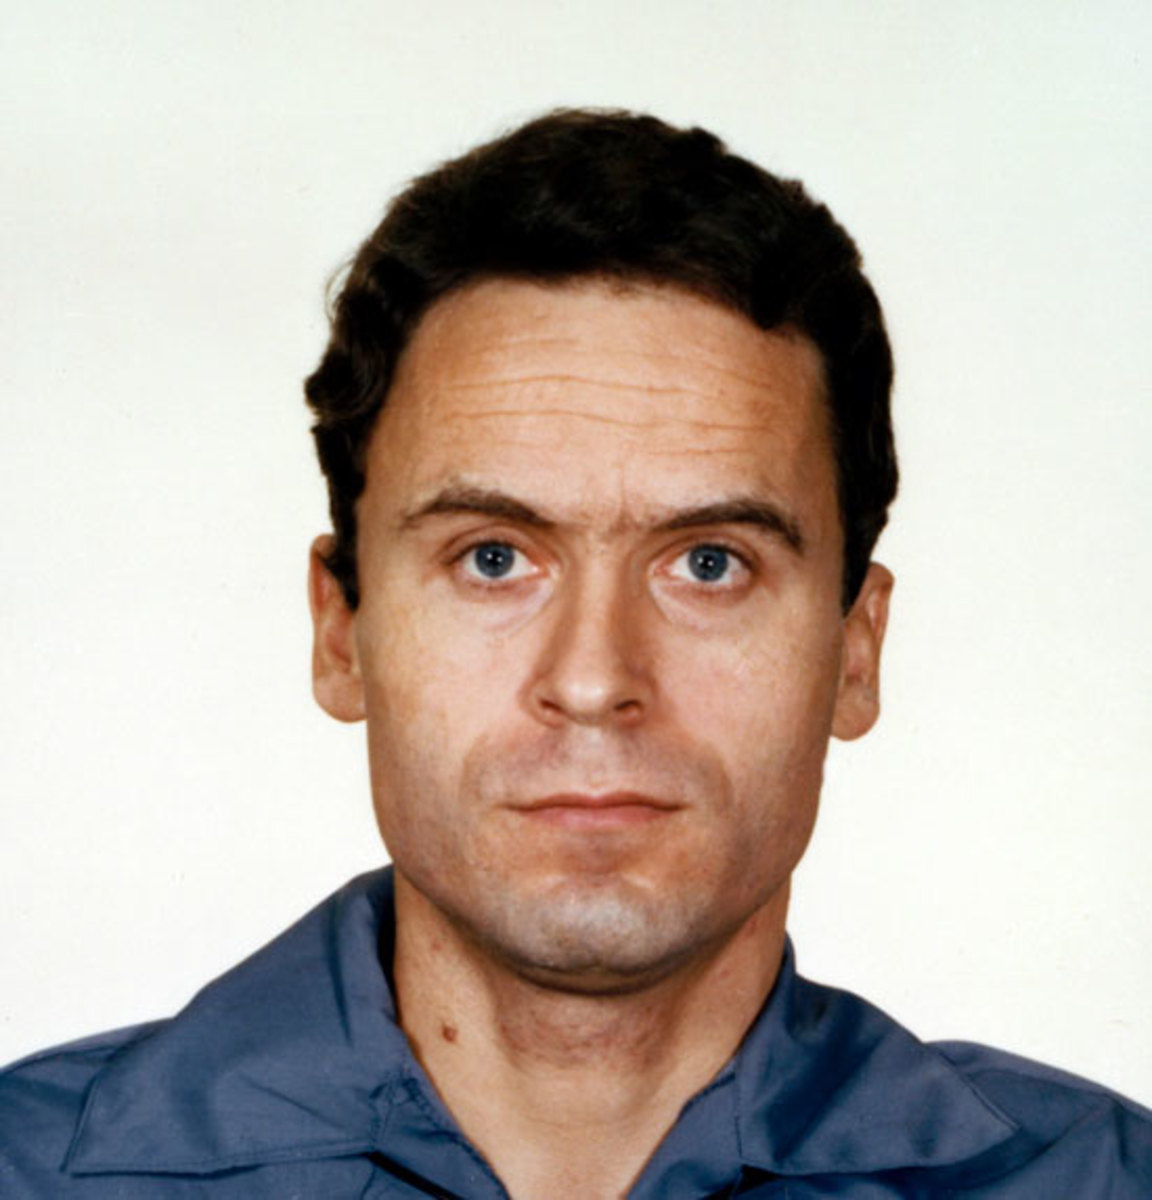 Ted Bundy alluded to killing up to 100 women.